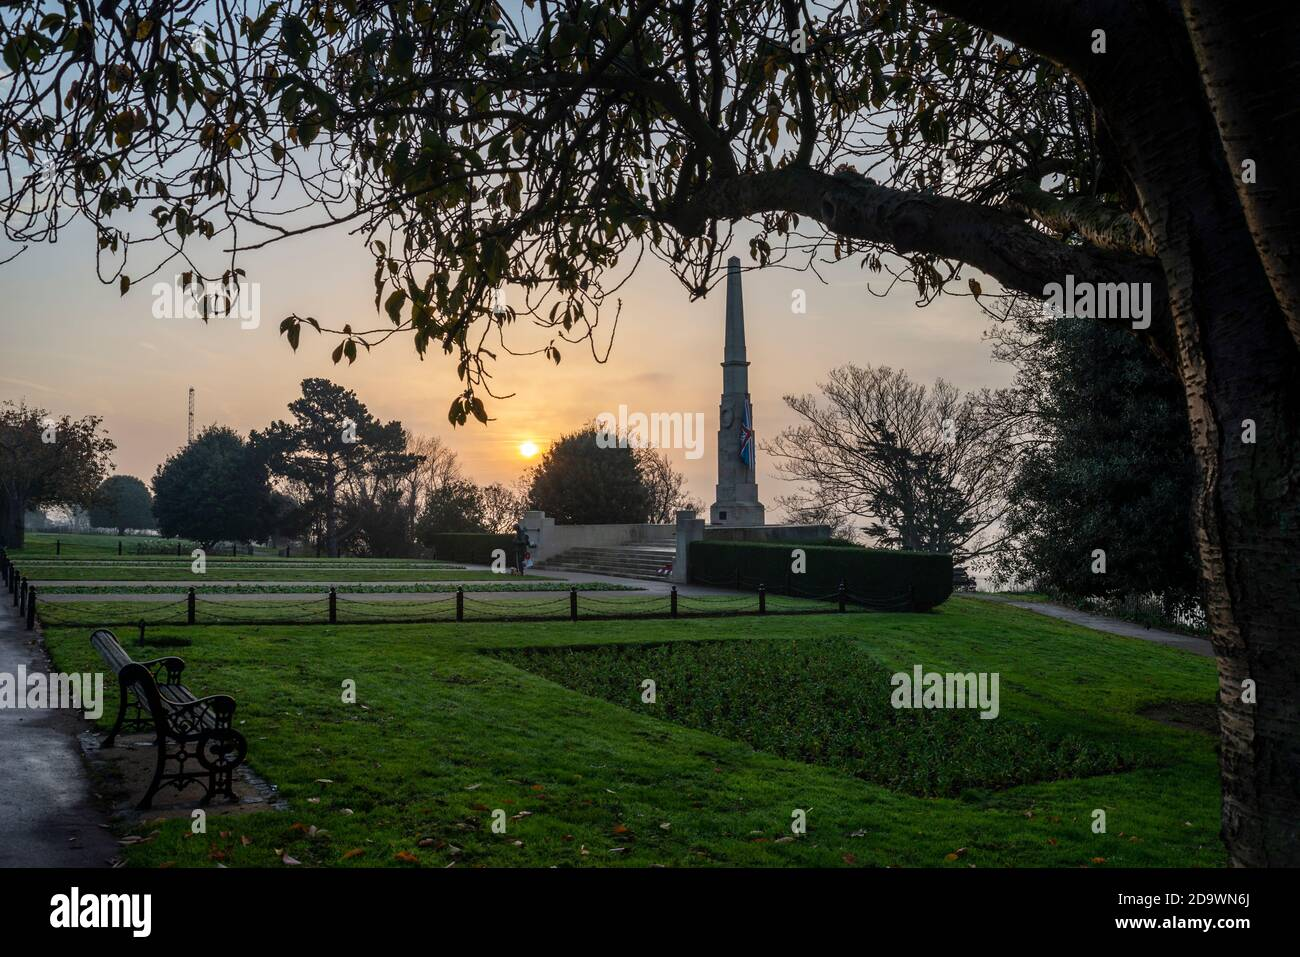 southend-on-sea-essex-uk-8th-nov-2020-the-sun-is-rising-on-remembrance-sunday-behind-the-southend-cenotaph-overlooking-the-thames-estuary-a-bronze-tommy-figure-is-a-recent-addition-credit-avpicsalamy-live-news-2D9WN6J.jpg